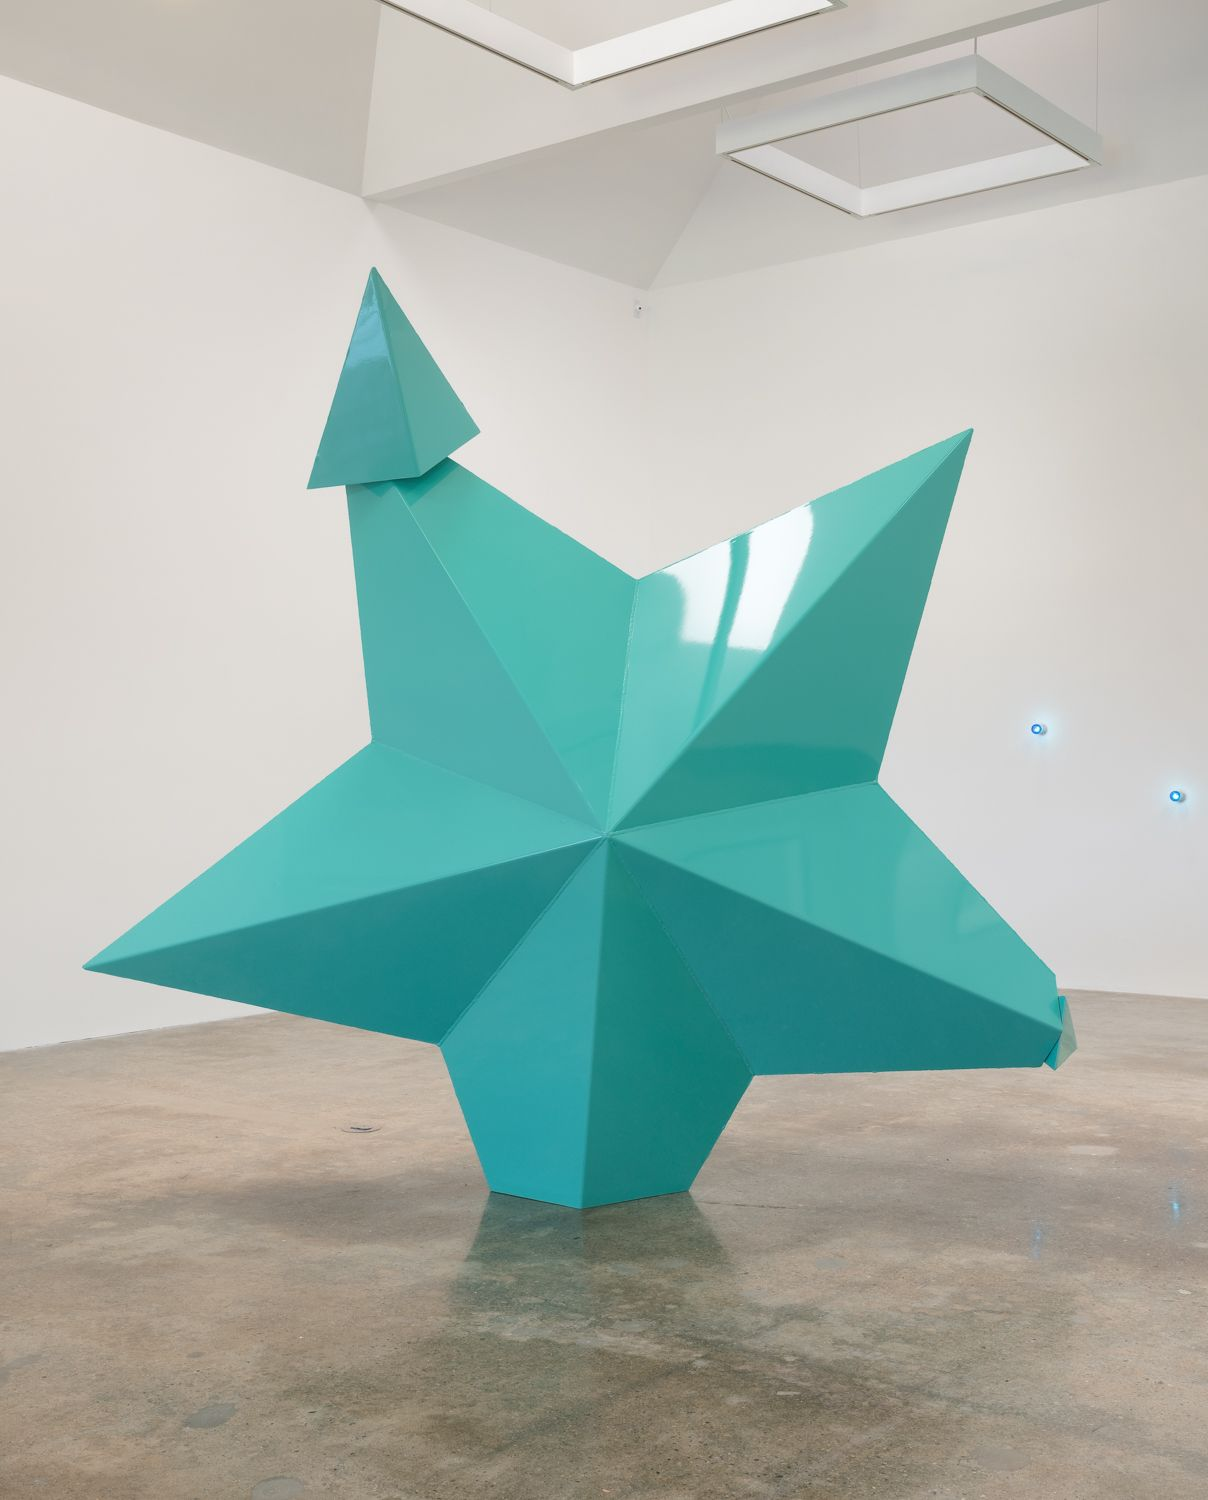 Mark Handforth  Turquoise Star, 2014